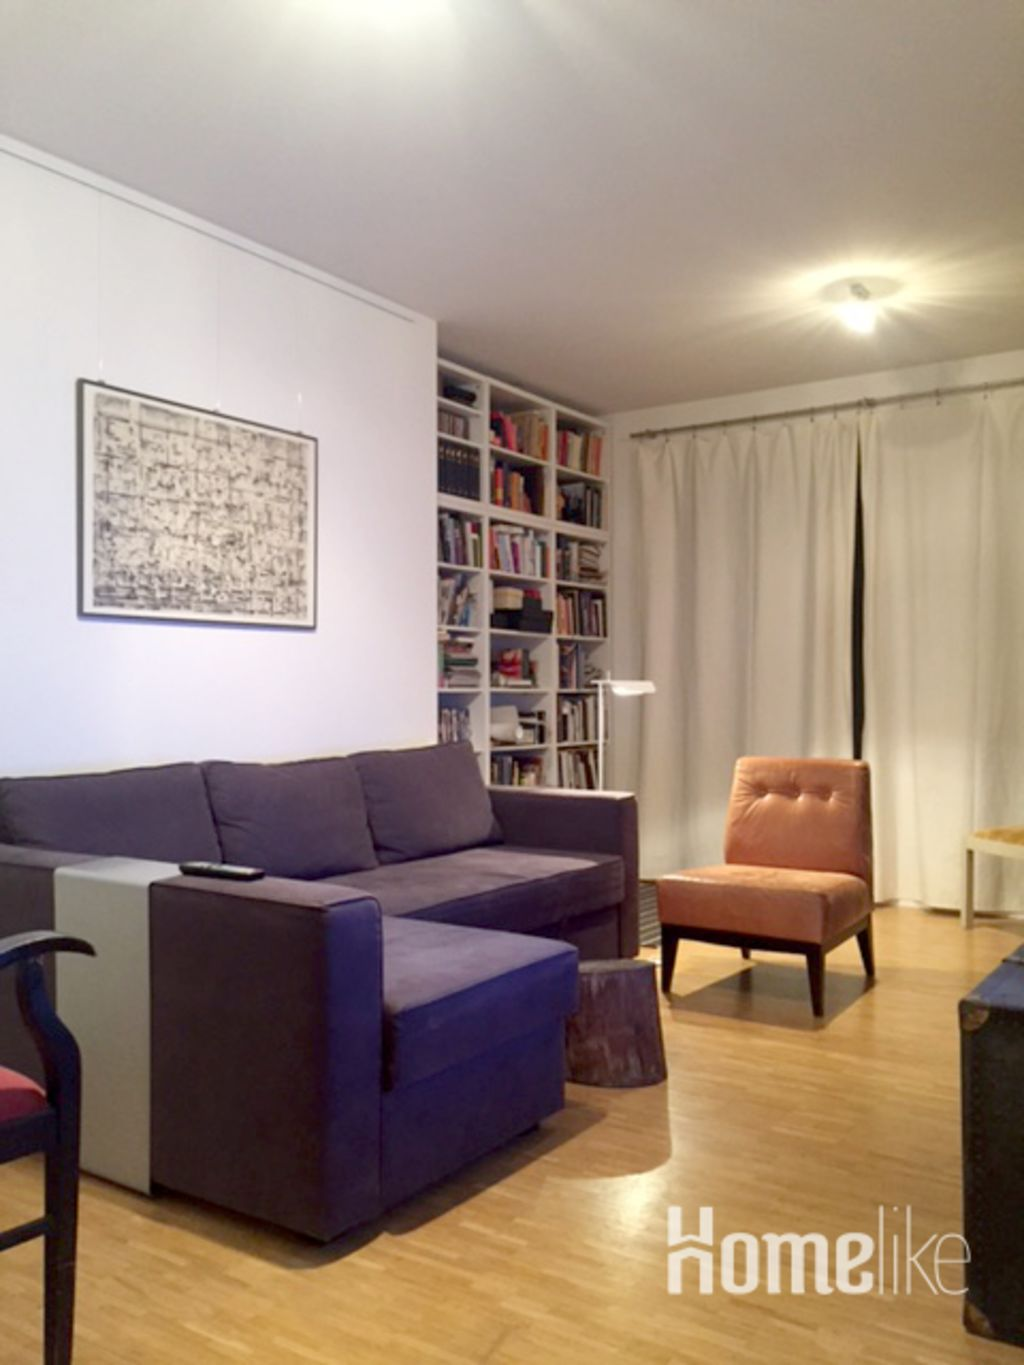 image 2 furnished 1 bedroom Apartment for rent in Othmarschen, Altona